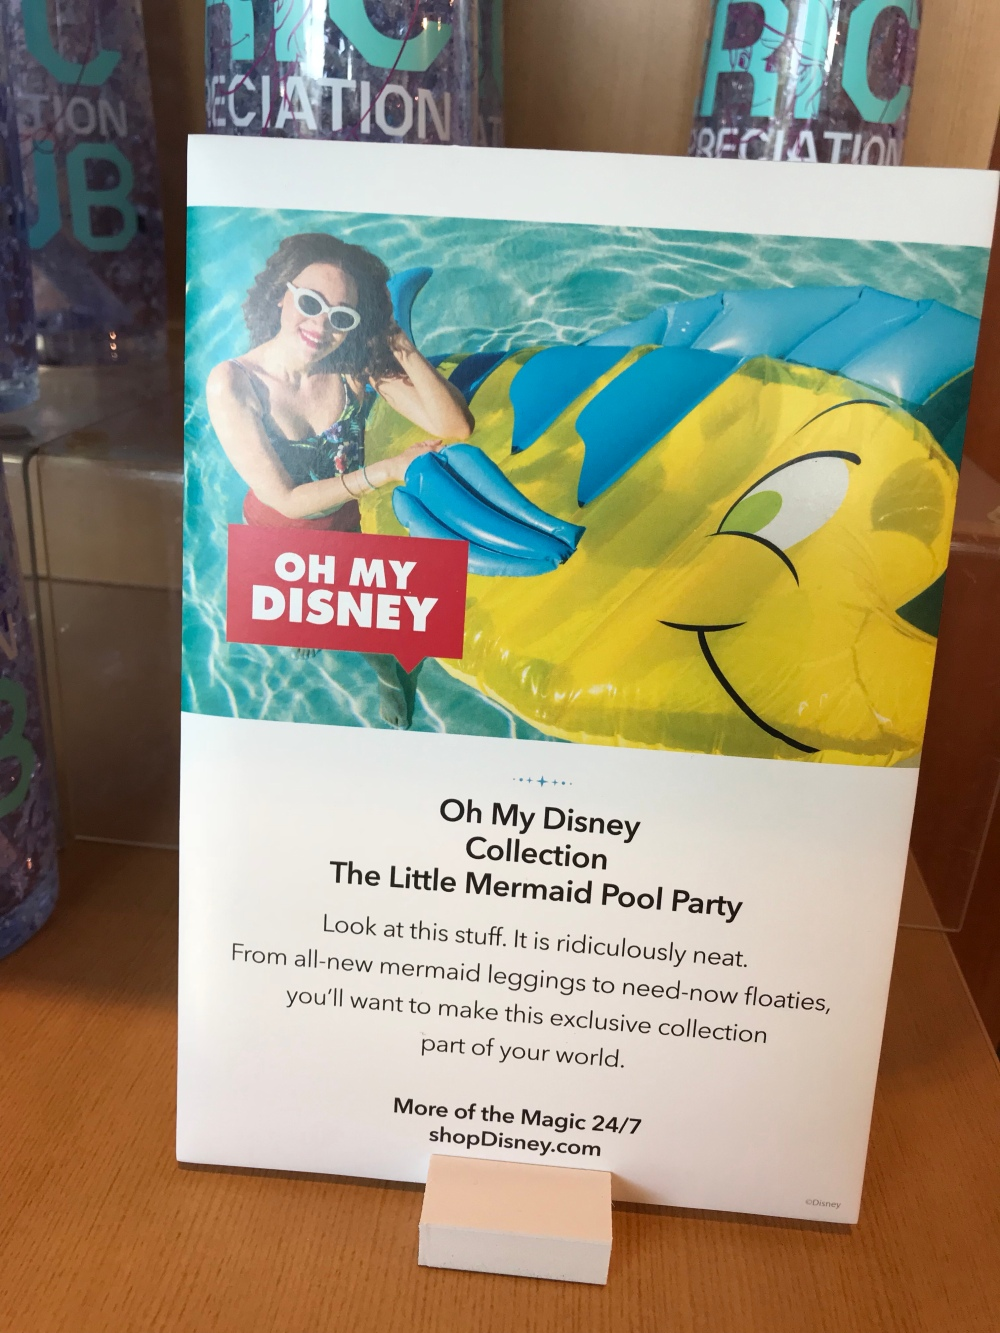 a64c2ae1f2c3c4 There is also a lot more to see online that wasn't available at my local  Disney store. Like pool floats and Bluetooth speakers!